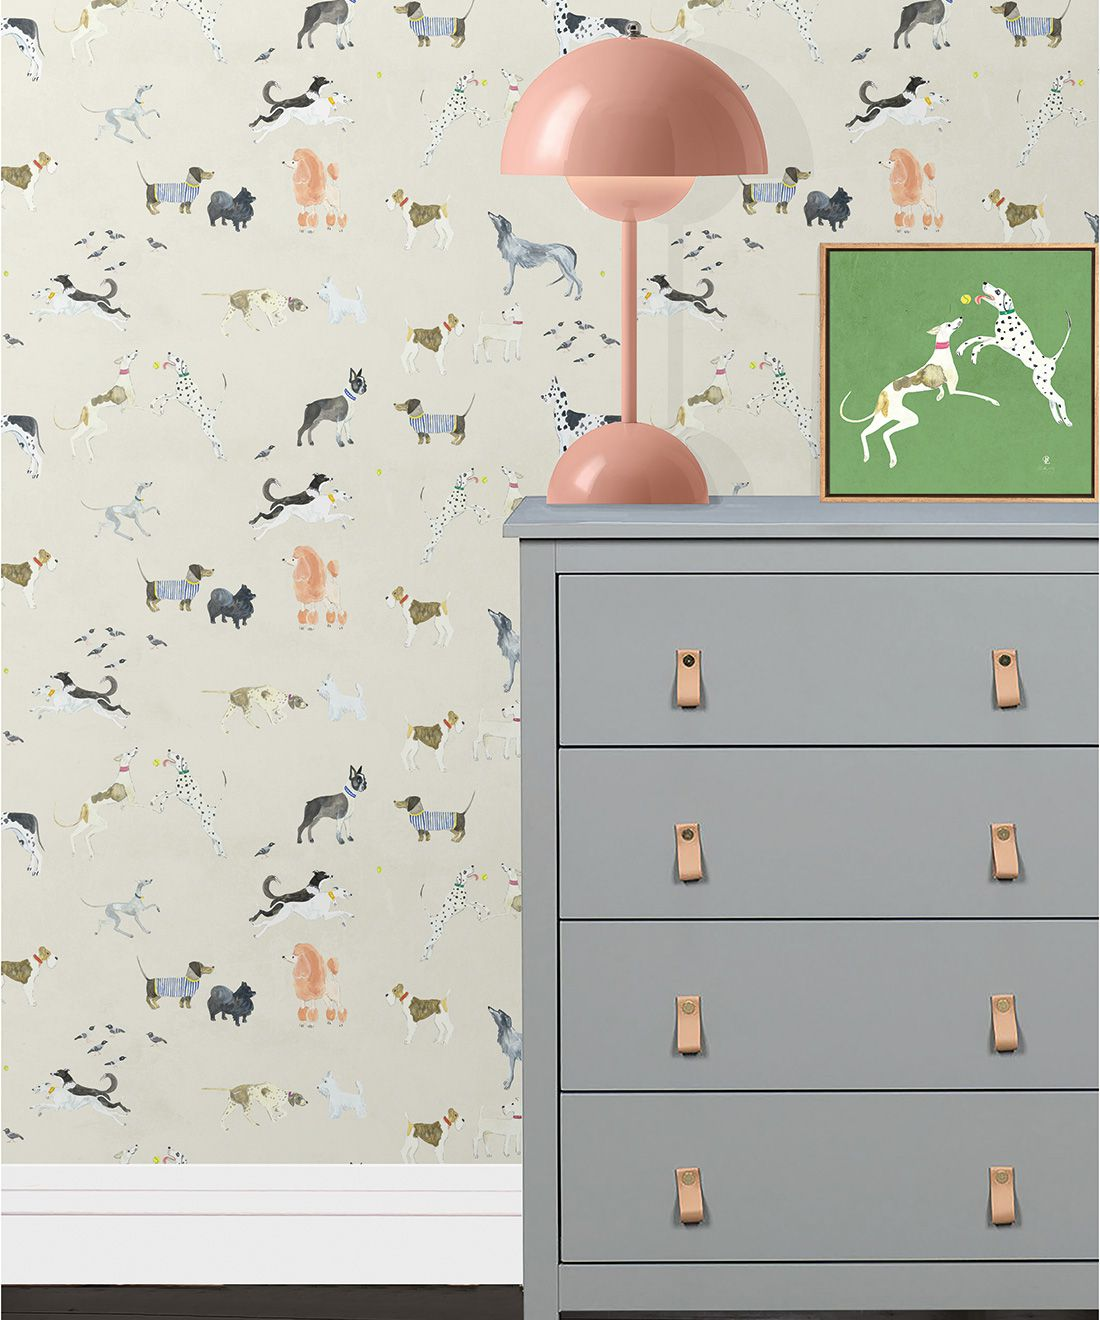 Doggies Wallpaper • Dog Wallpaper • Cream • Insitu with lamp and dresser